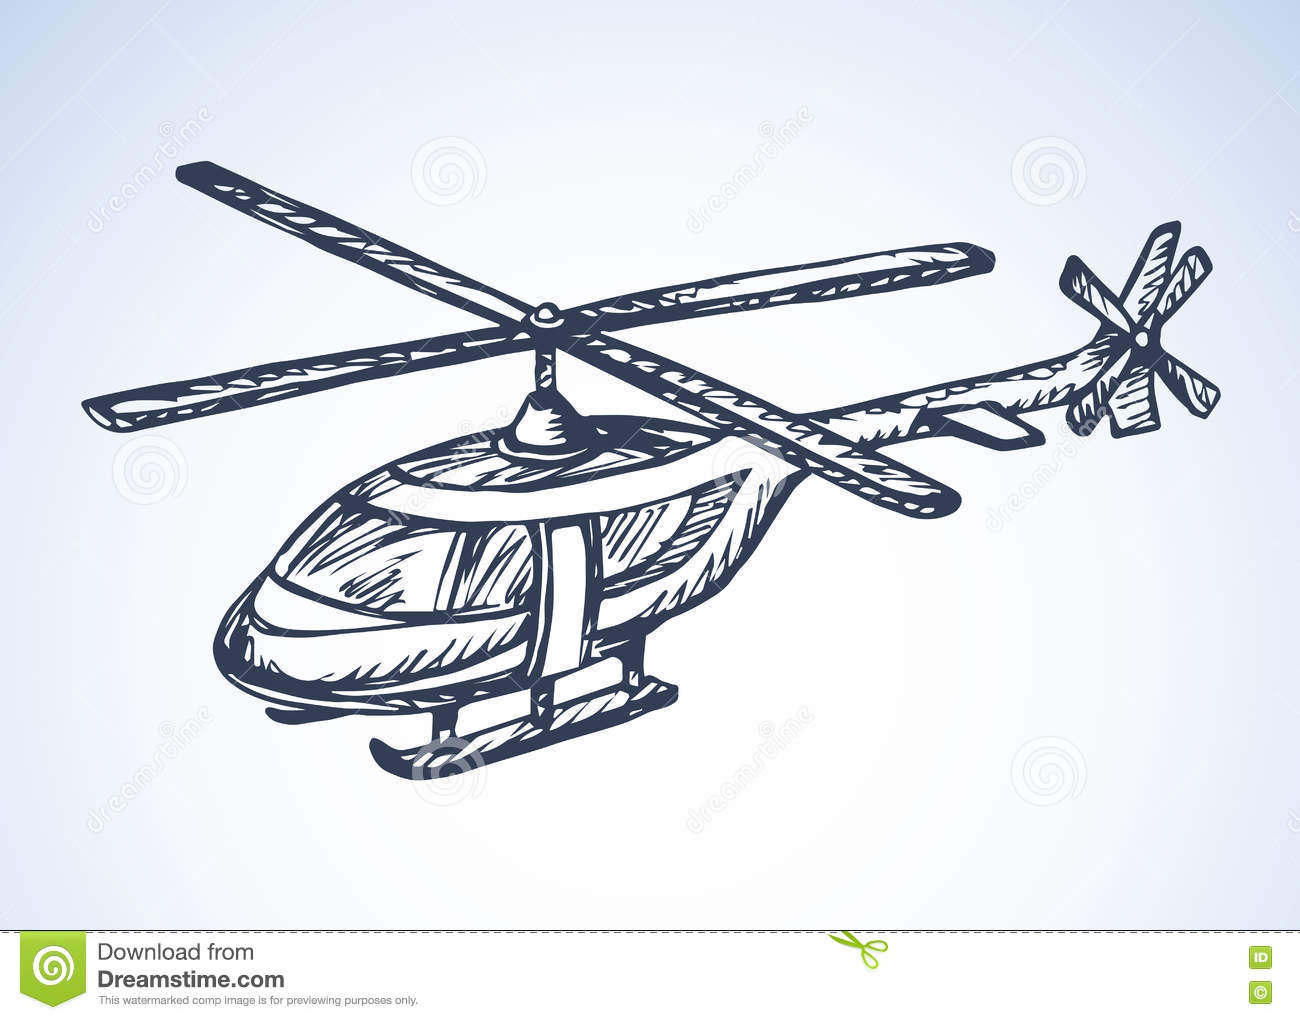 control remote airplane with Stock Illustration Helicopter Vector Drawing Modern Turning Radio Remote Rc Model White Background Freehand Outline Ink Hand Drawn Picture Web Image73125225 on The Transformers Drone Switch Plane Quadcopter Touch Button additionally 181861778069 together with Cute Mini Toilet Speakers For Laptop additionally Avion Tele mande additionally 405150 32360394347.